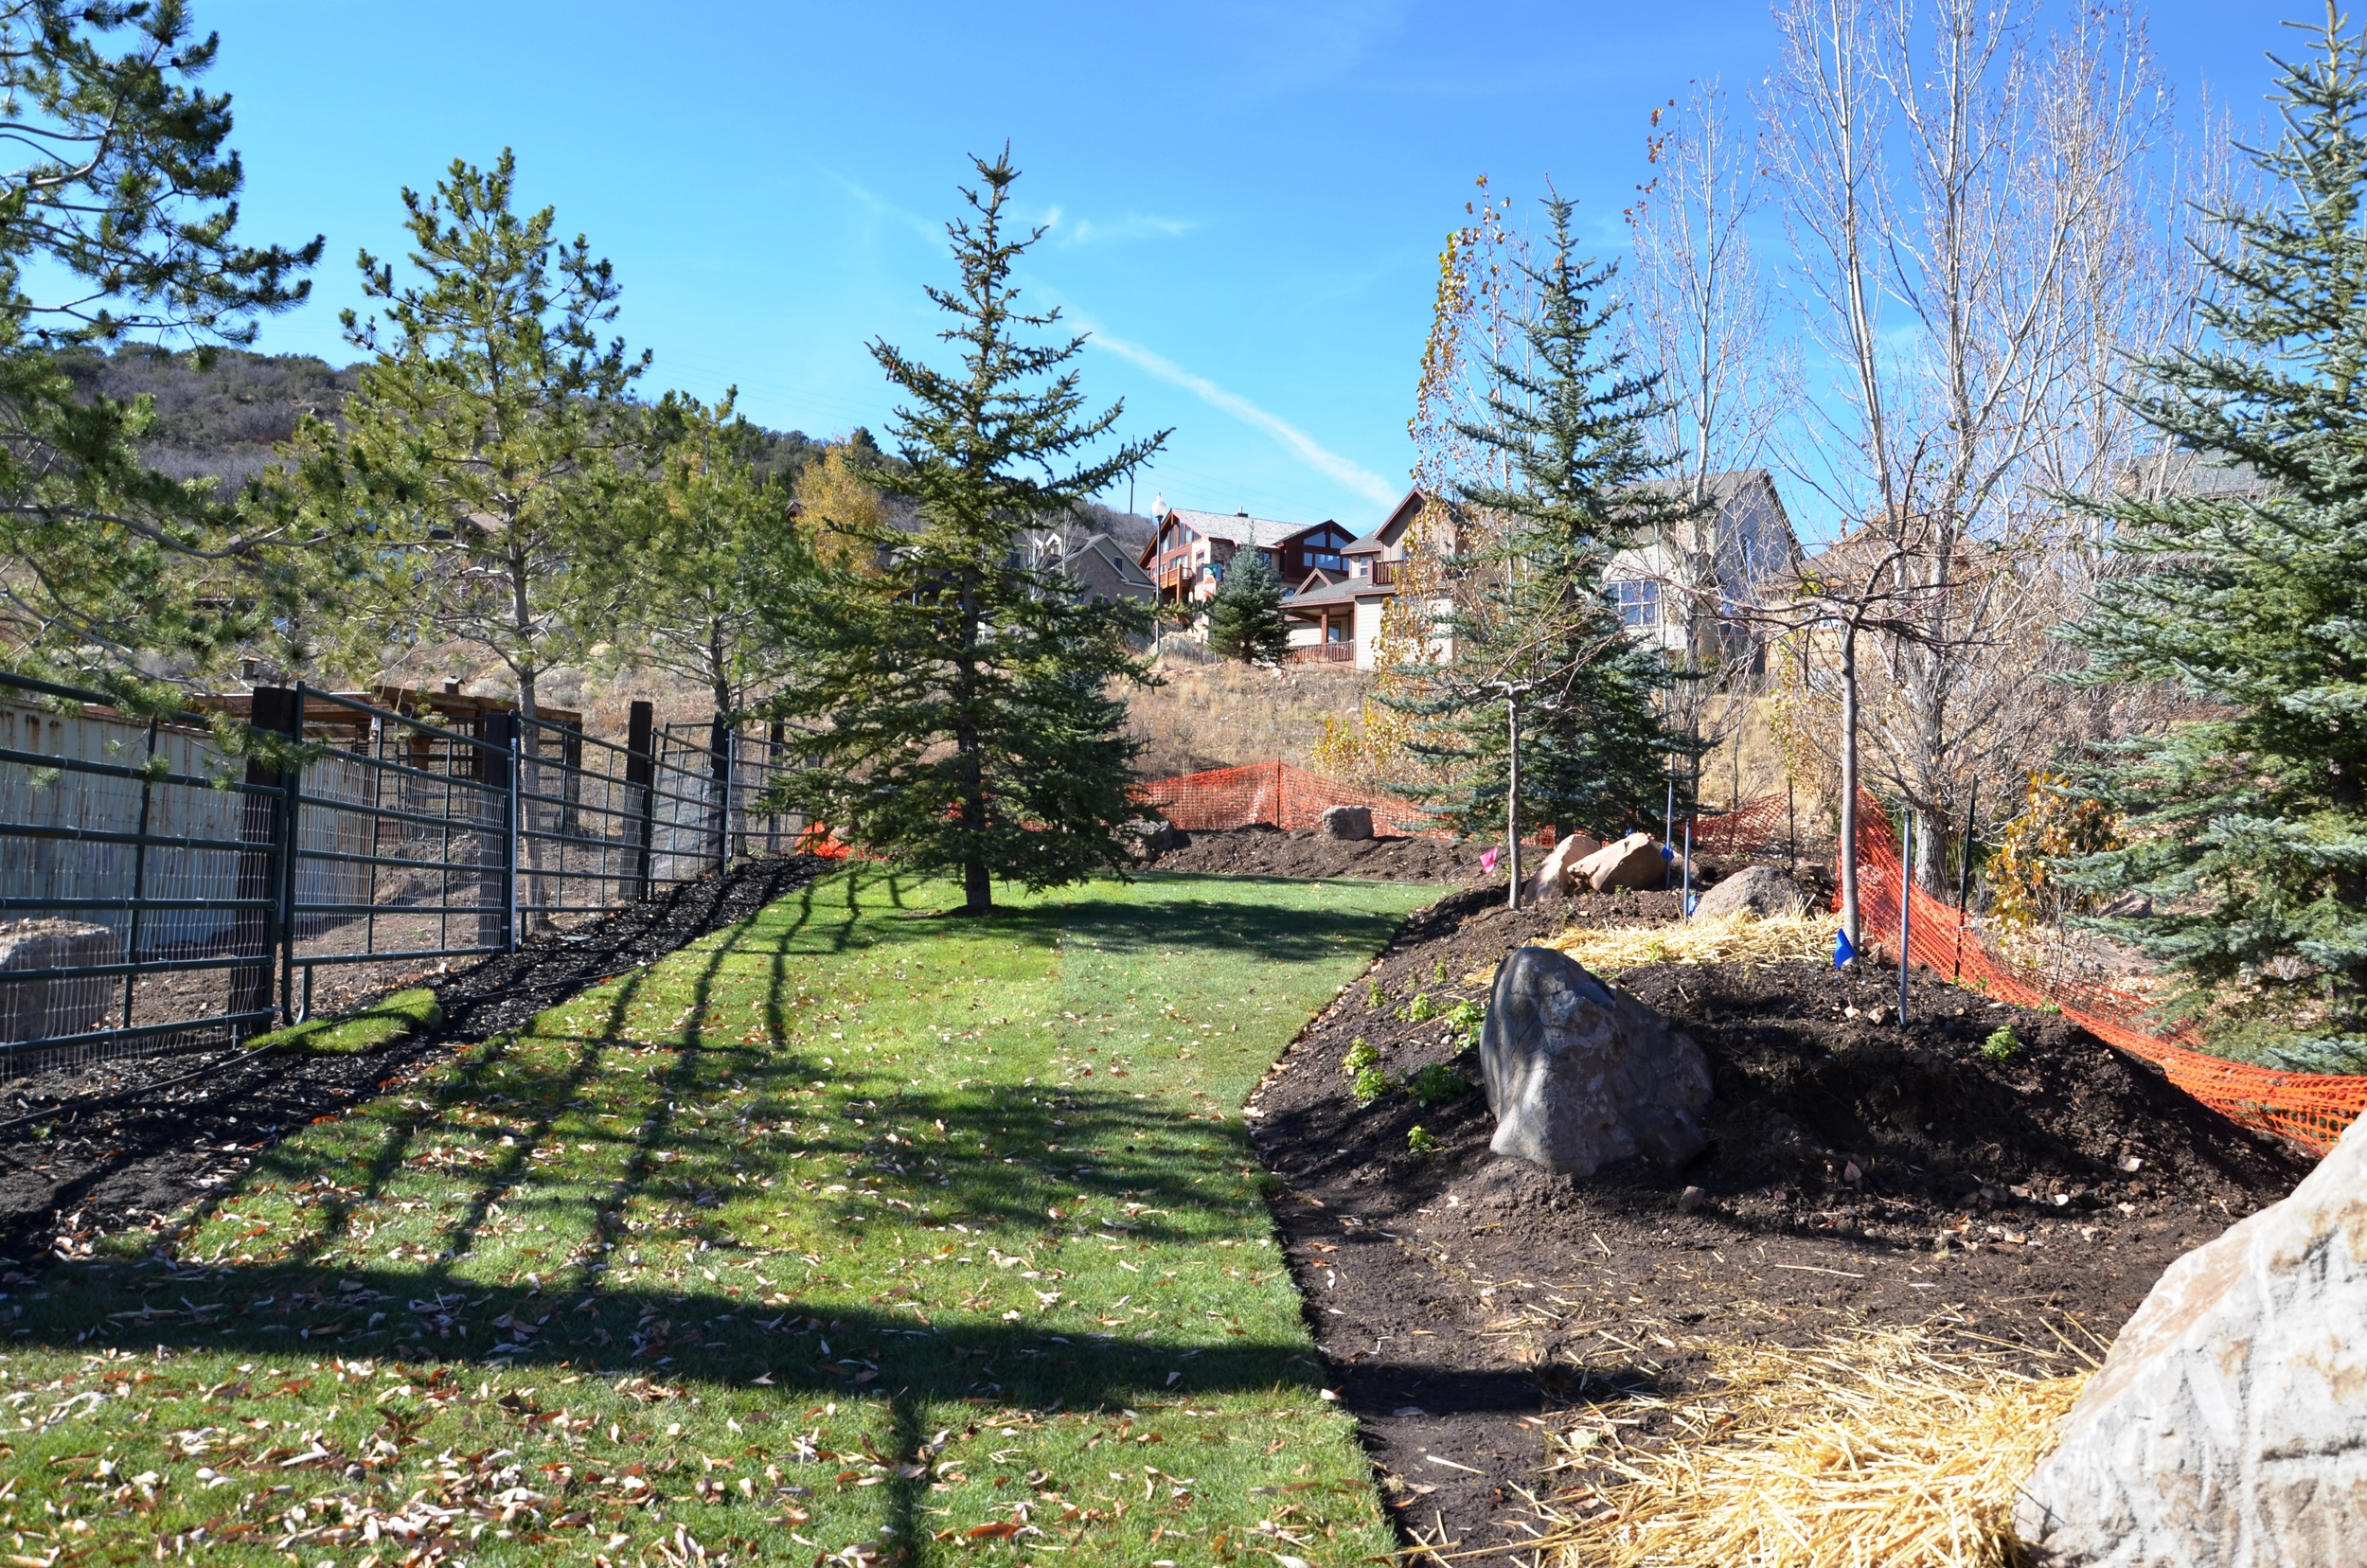 New sod, dirt and trees have been planted on the sides of the farm to restore the beauty of the surrounding space.